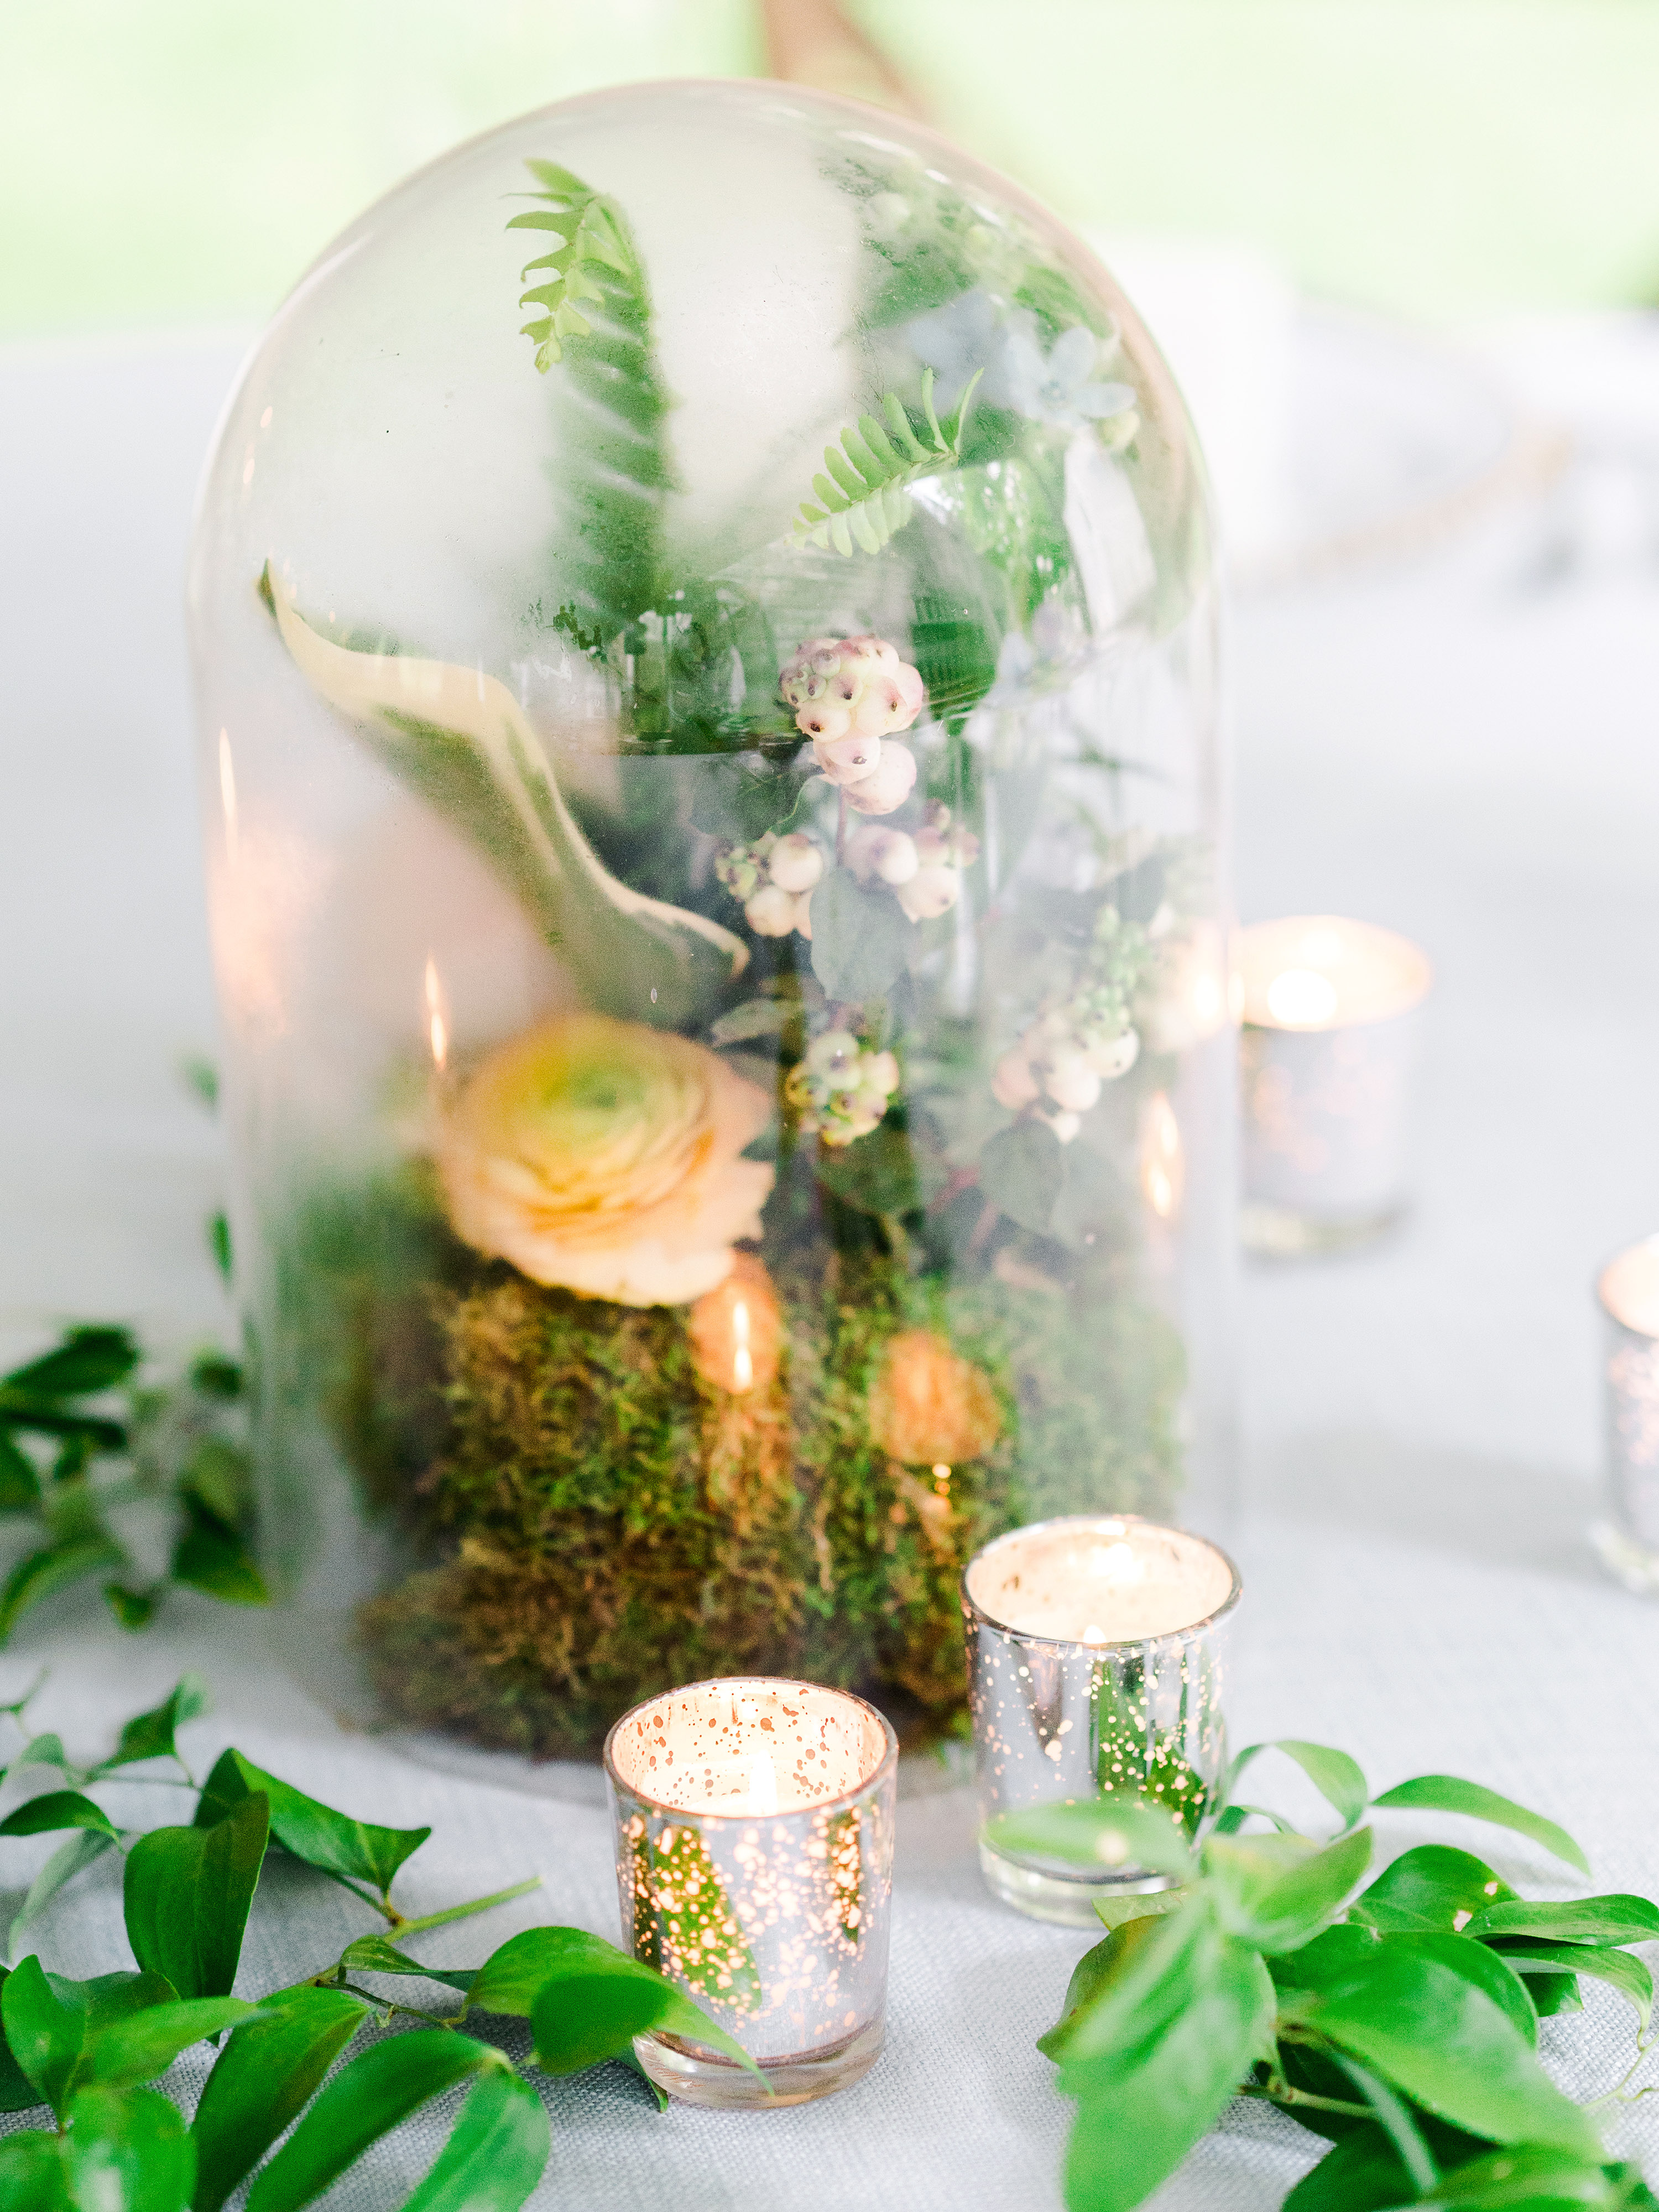 dayane collin wedding cloche centerpiece with candles